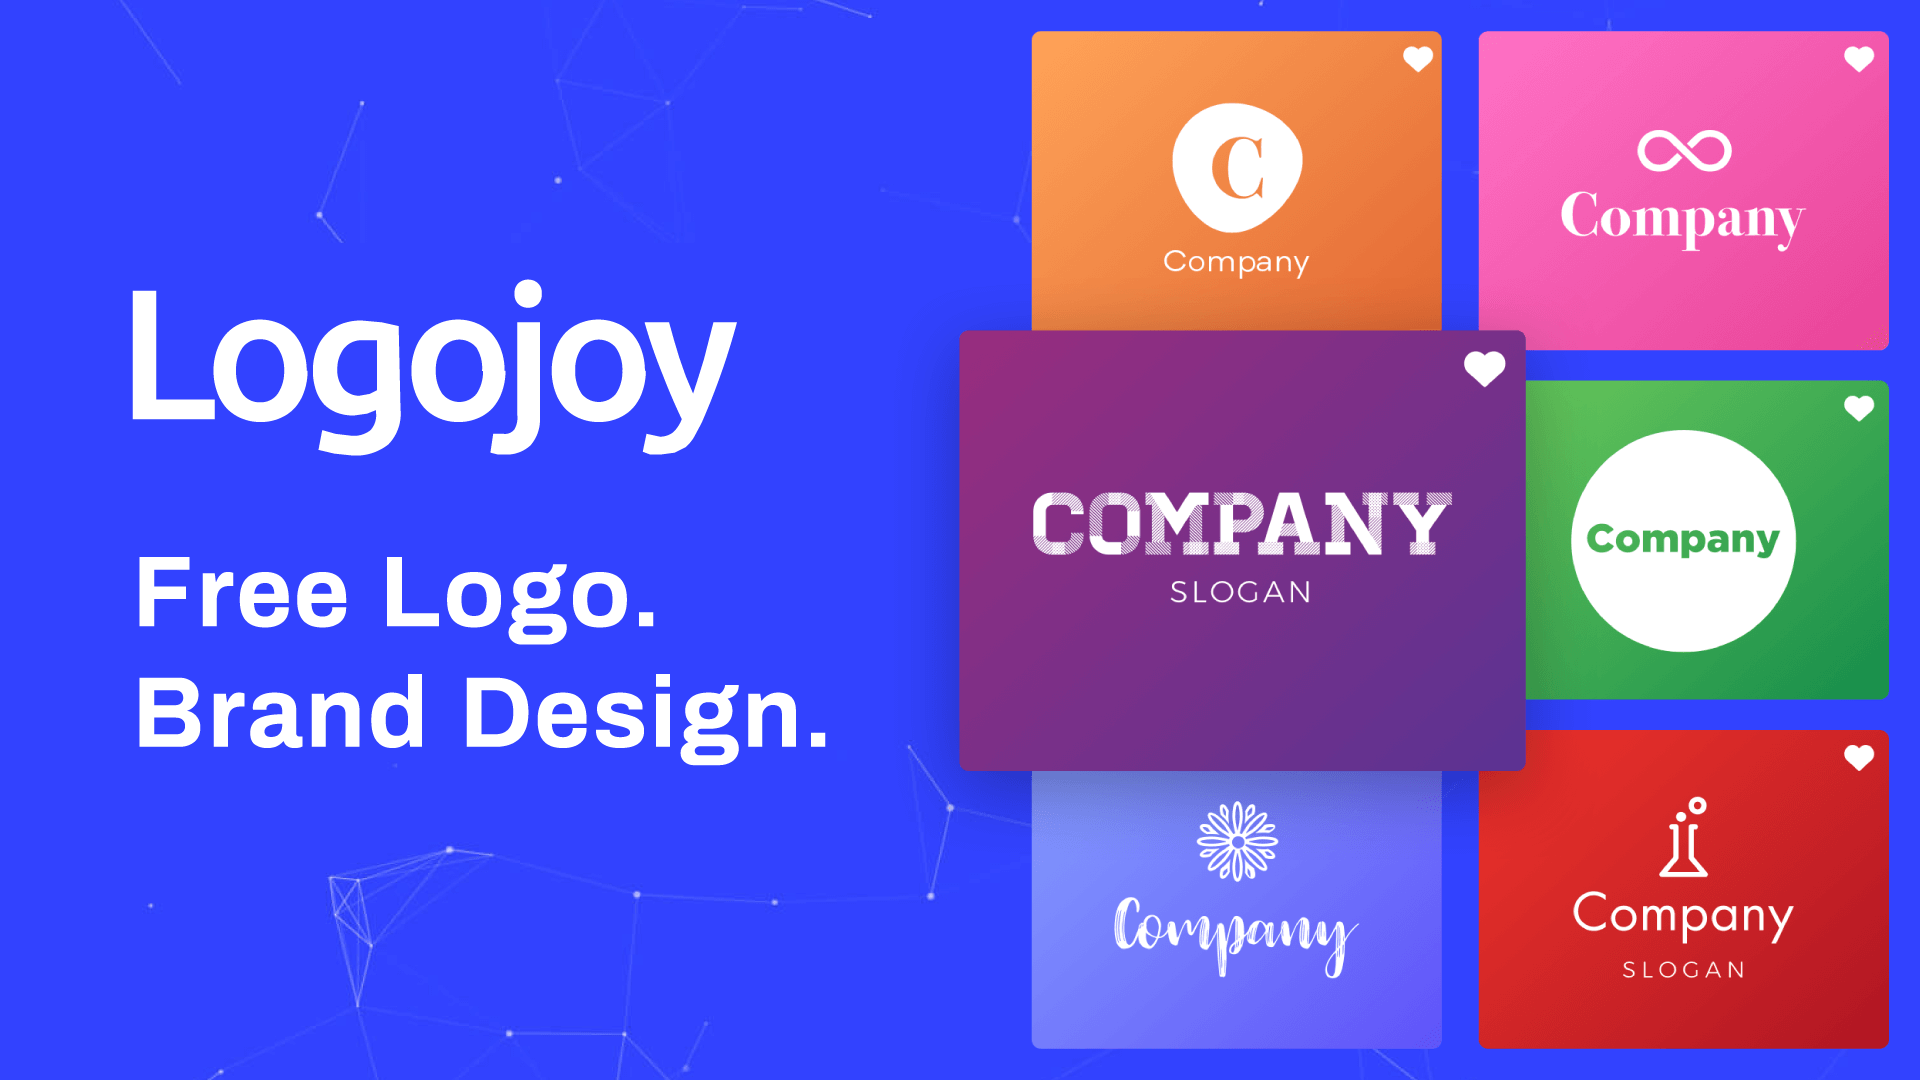 Free logo design on Logojoy